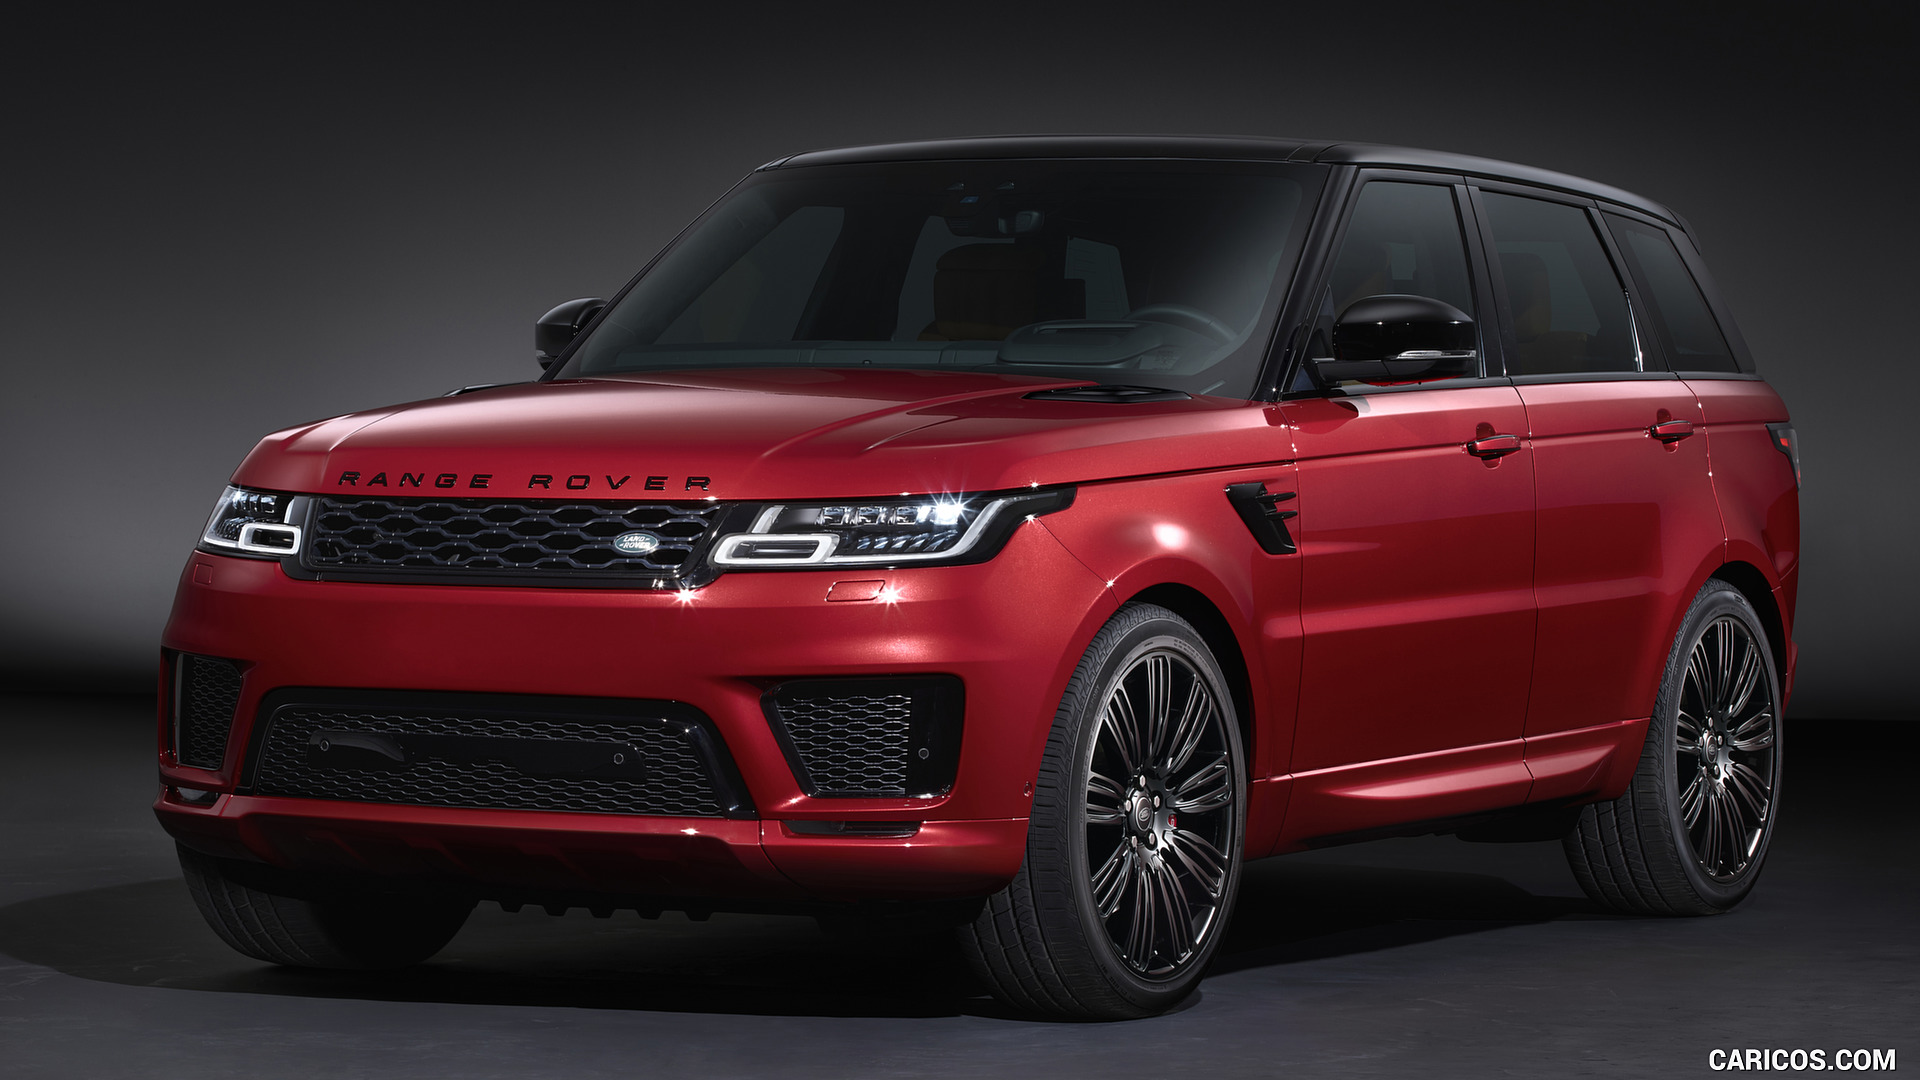 Land Rover Range Rover 2020 red